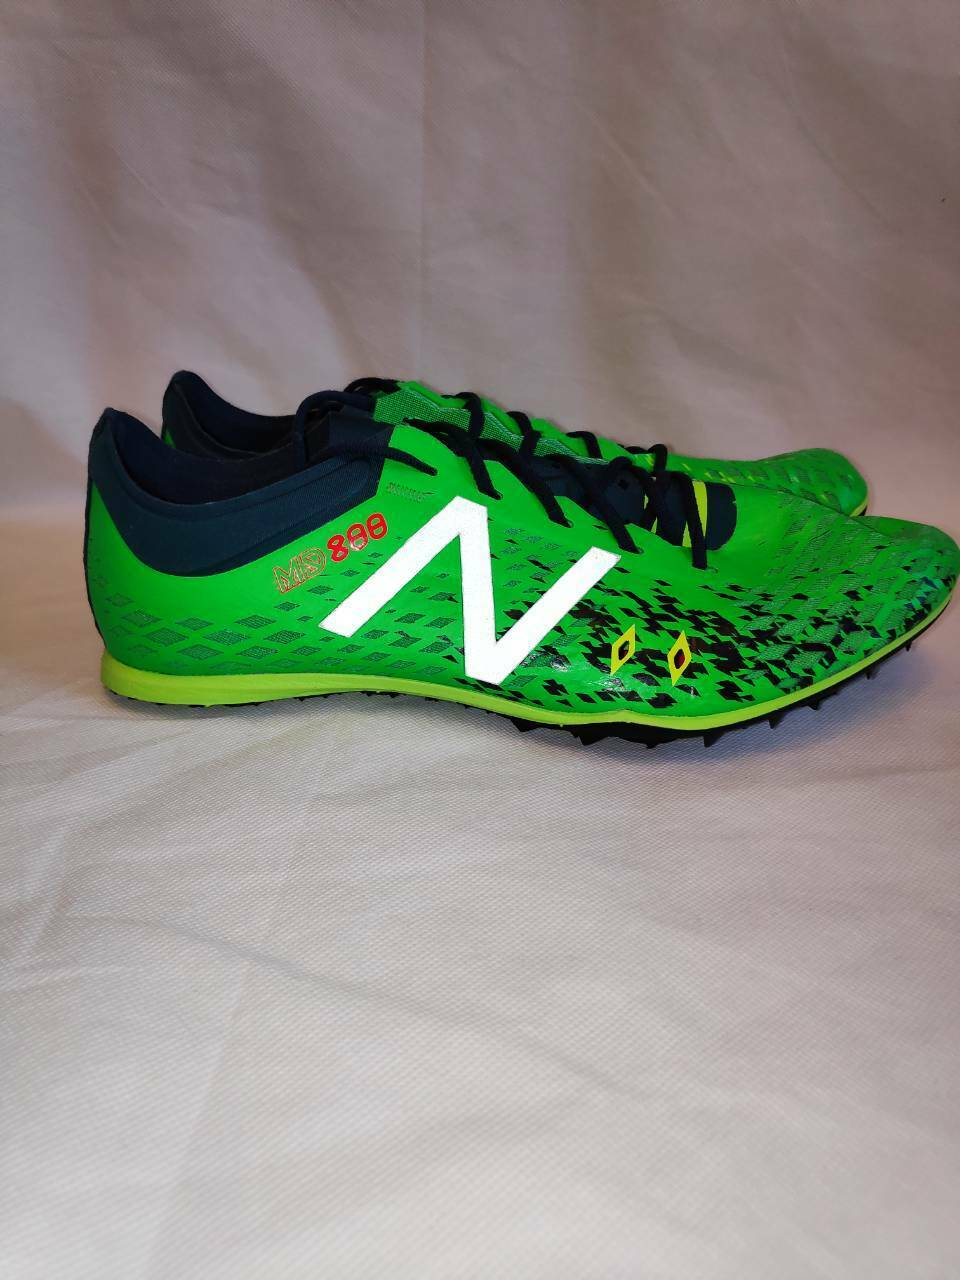 New Balance MD800v5 Men's mid distance track spikes NEW size US 9 send worldwide